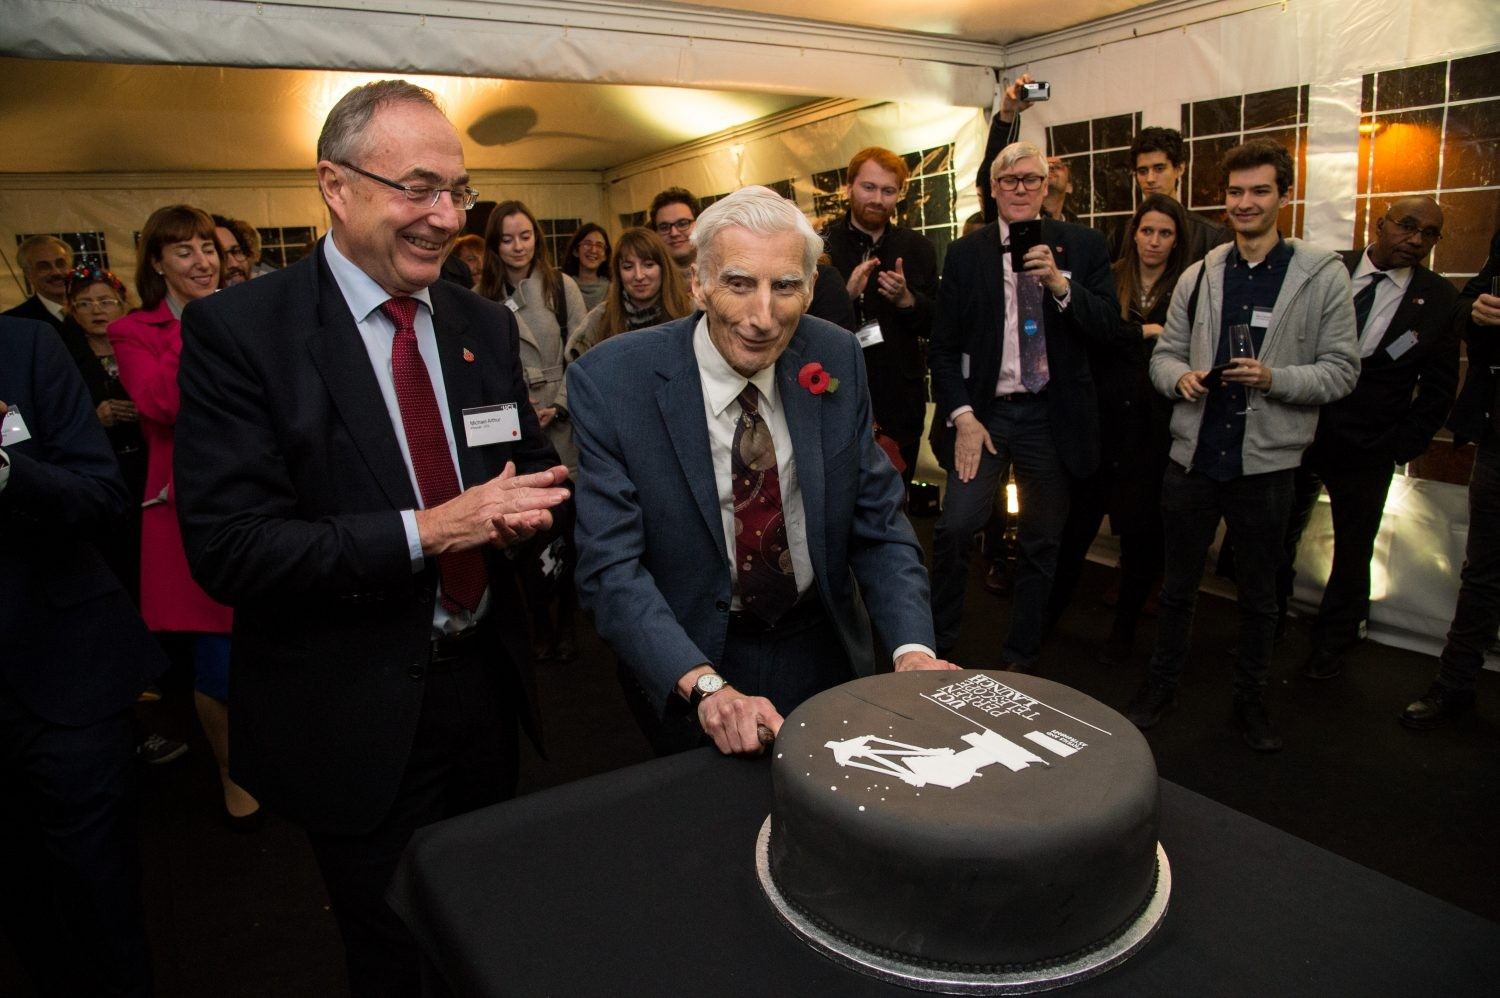 Astronomer Royal Martin Rees cuts the cake at the UCL Observatory Perren telescope unveiling event (Image by Kirsten Holst)